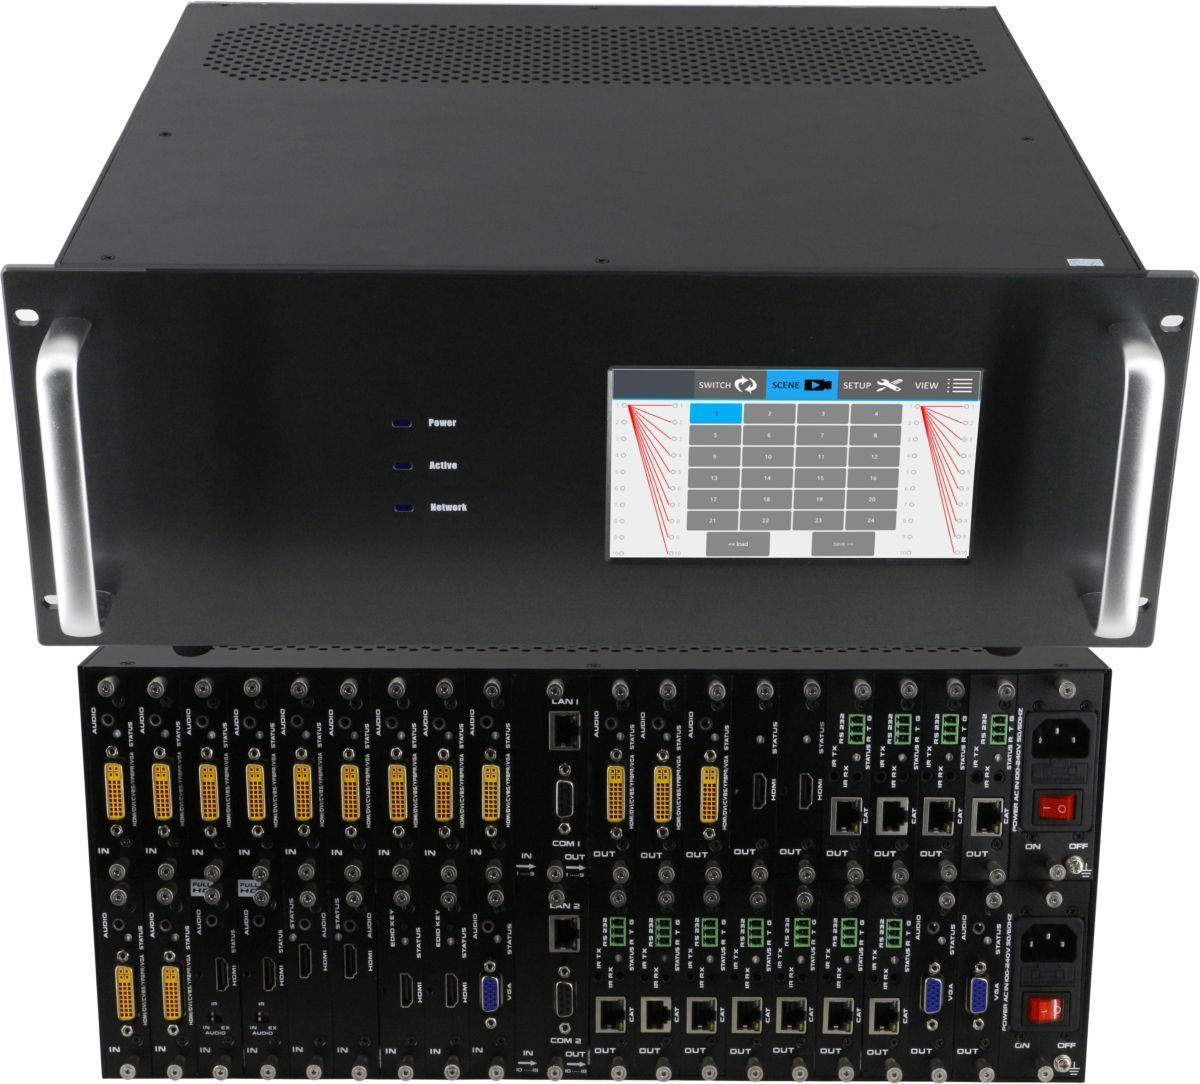 4K 16x4 HDMI Matrix Switcher with Color Touchscreen